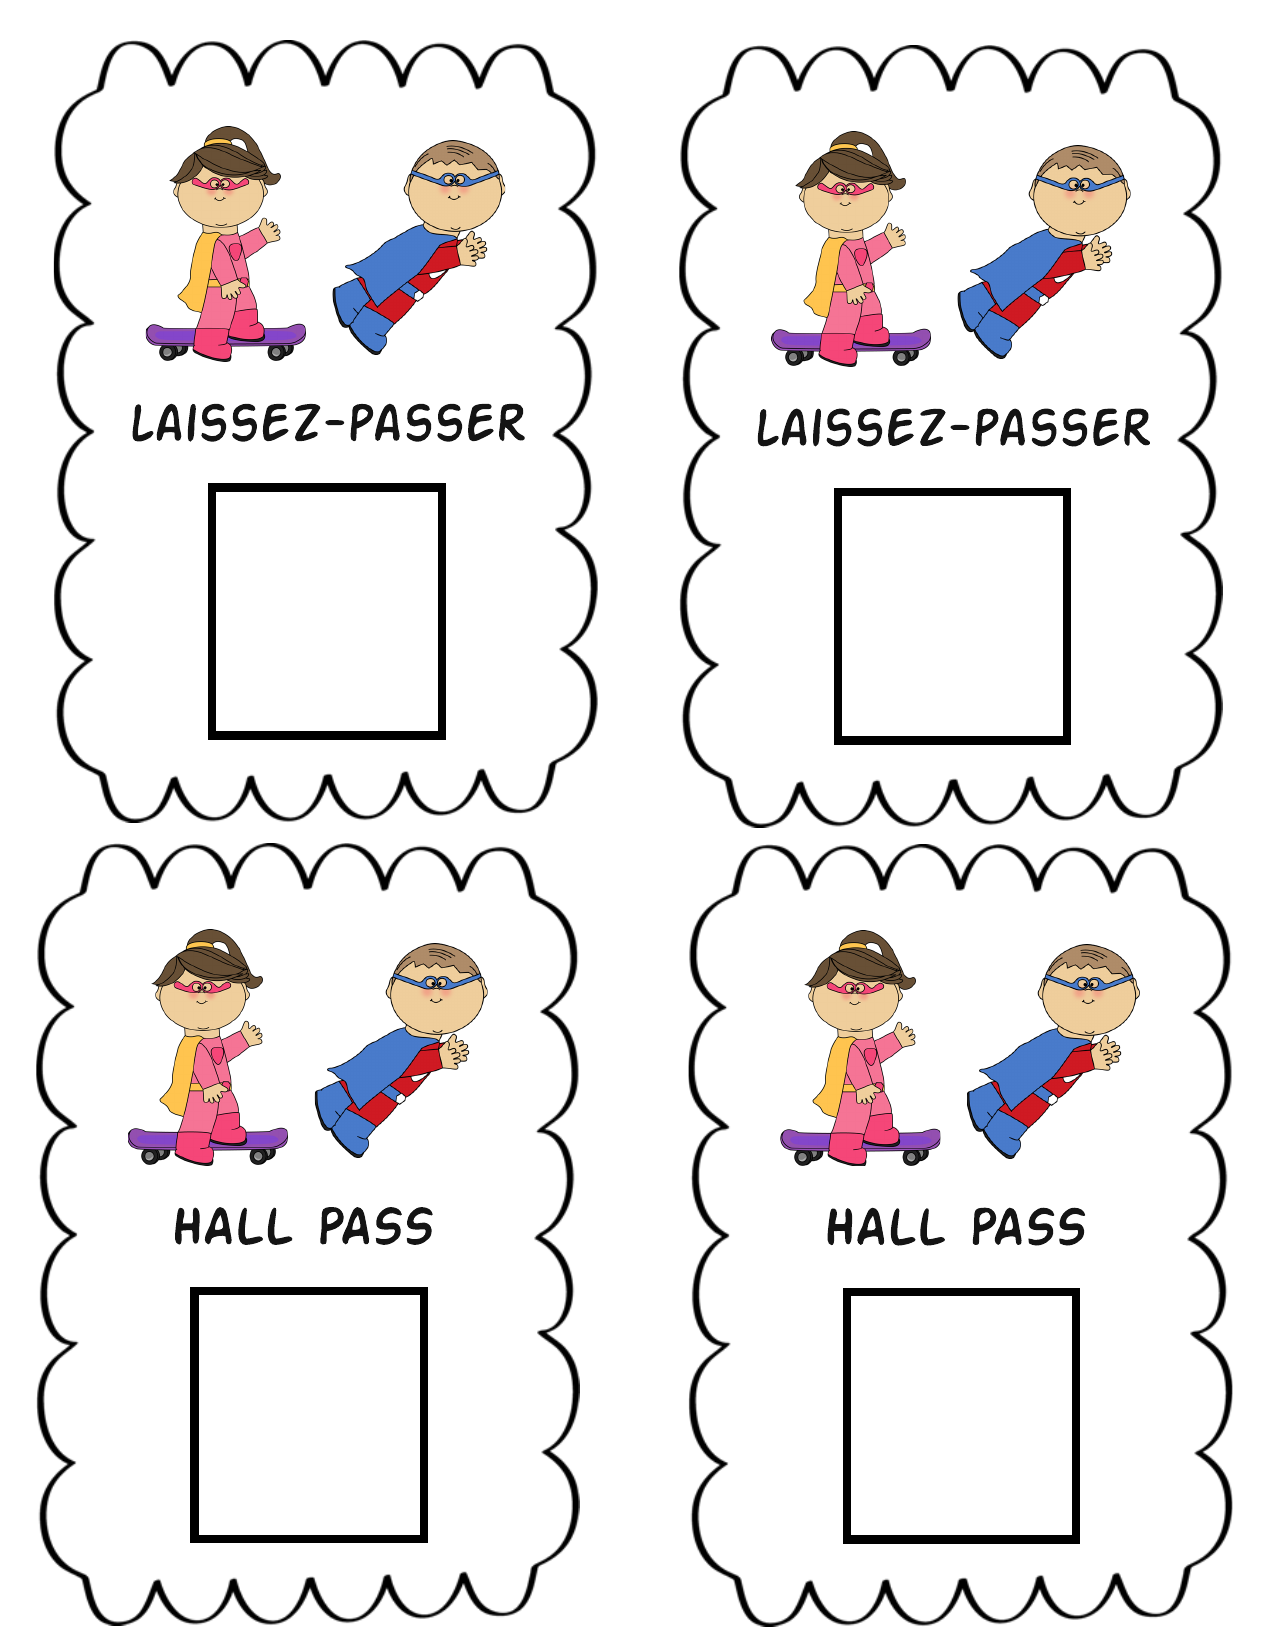 Hall Pass French and English Resource Preview